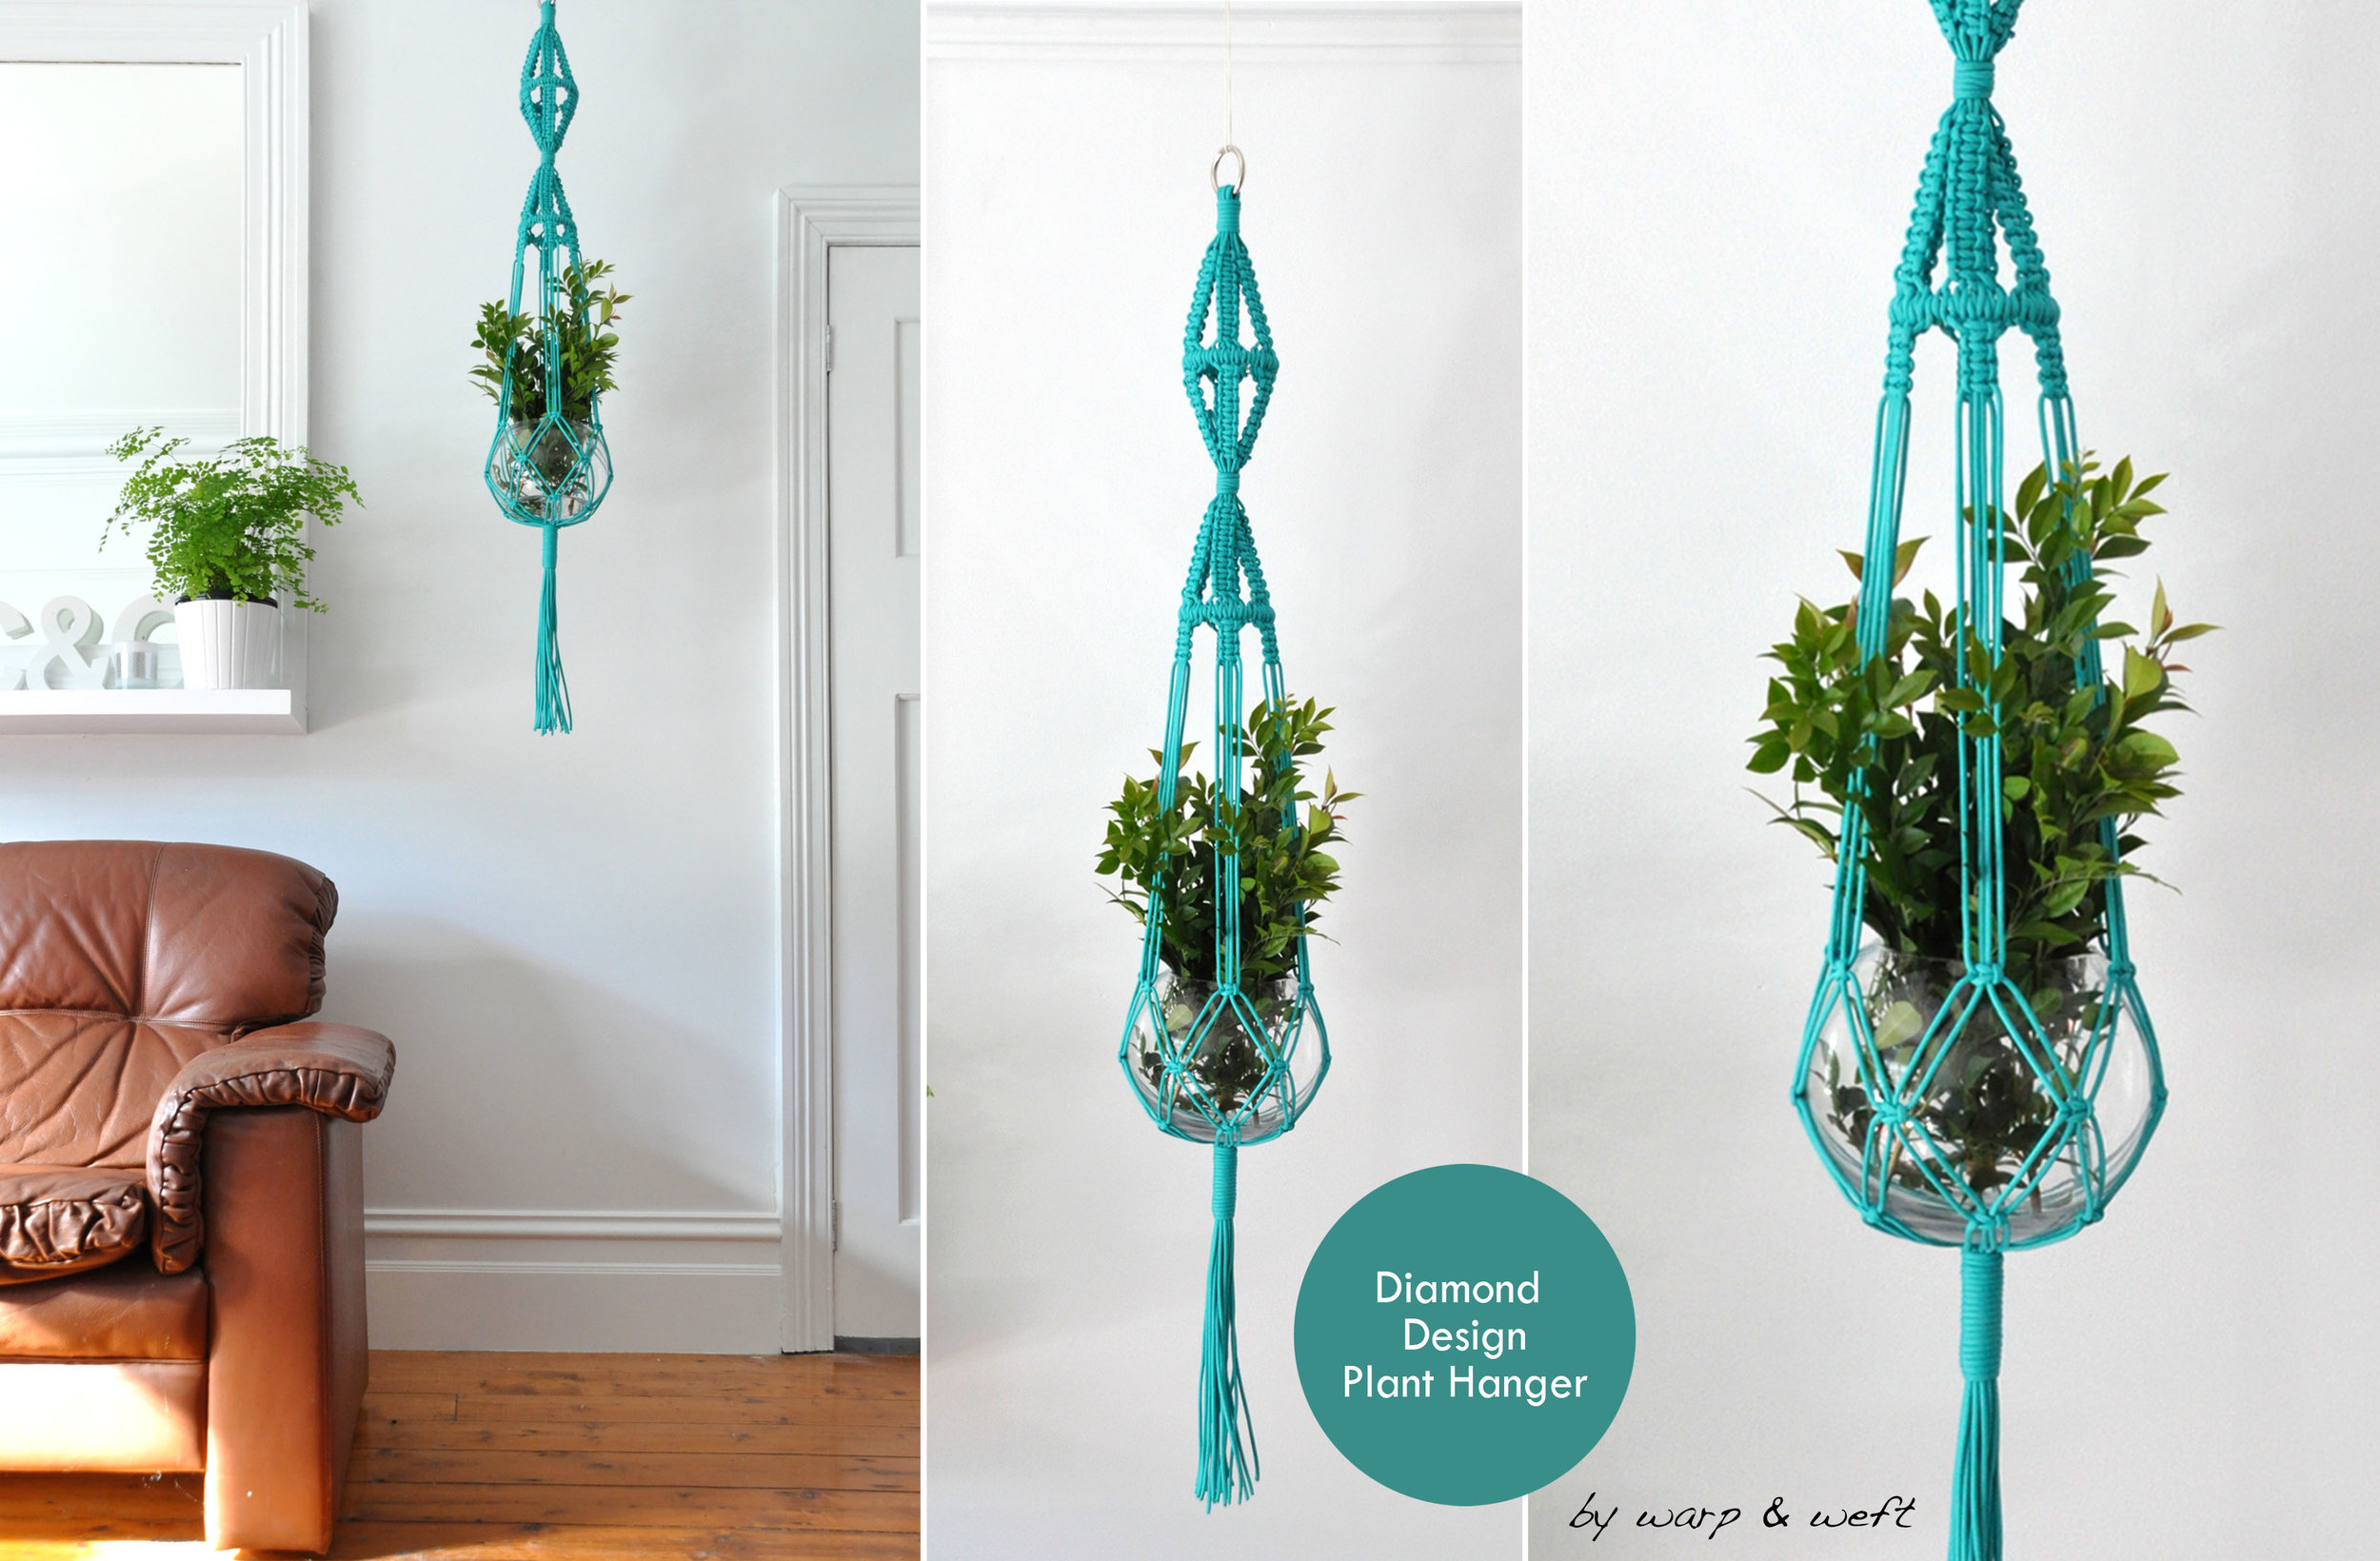 Beautifully handmade Macrame Plant Hangers. A classic re-designed into a modern stylish interior piece. The top detail feature design, similar to a diamond creating a nice statement design.  * Includes Glass fishbowl vase * Range of colours available  Note - Each piece is hand made to order. Please allow for a 2-3 weeks waiting period.